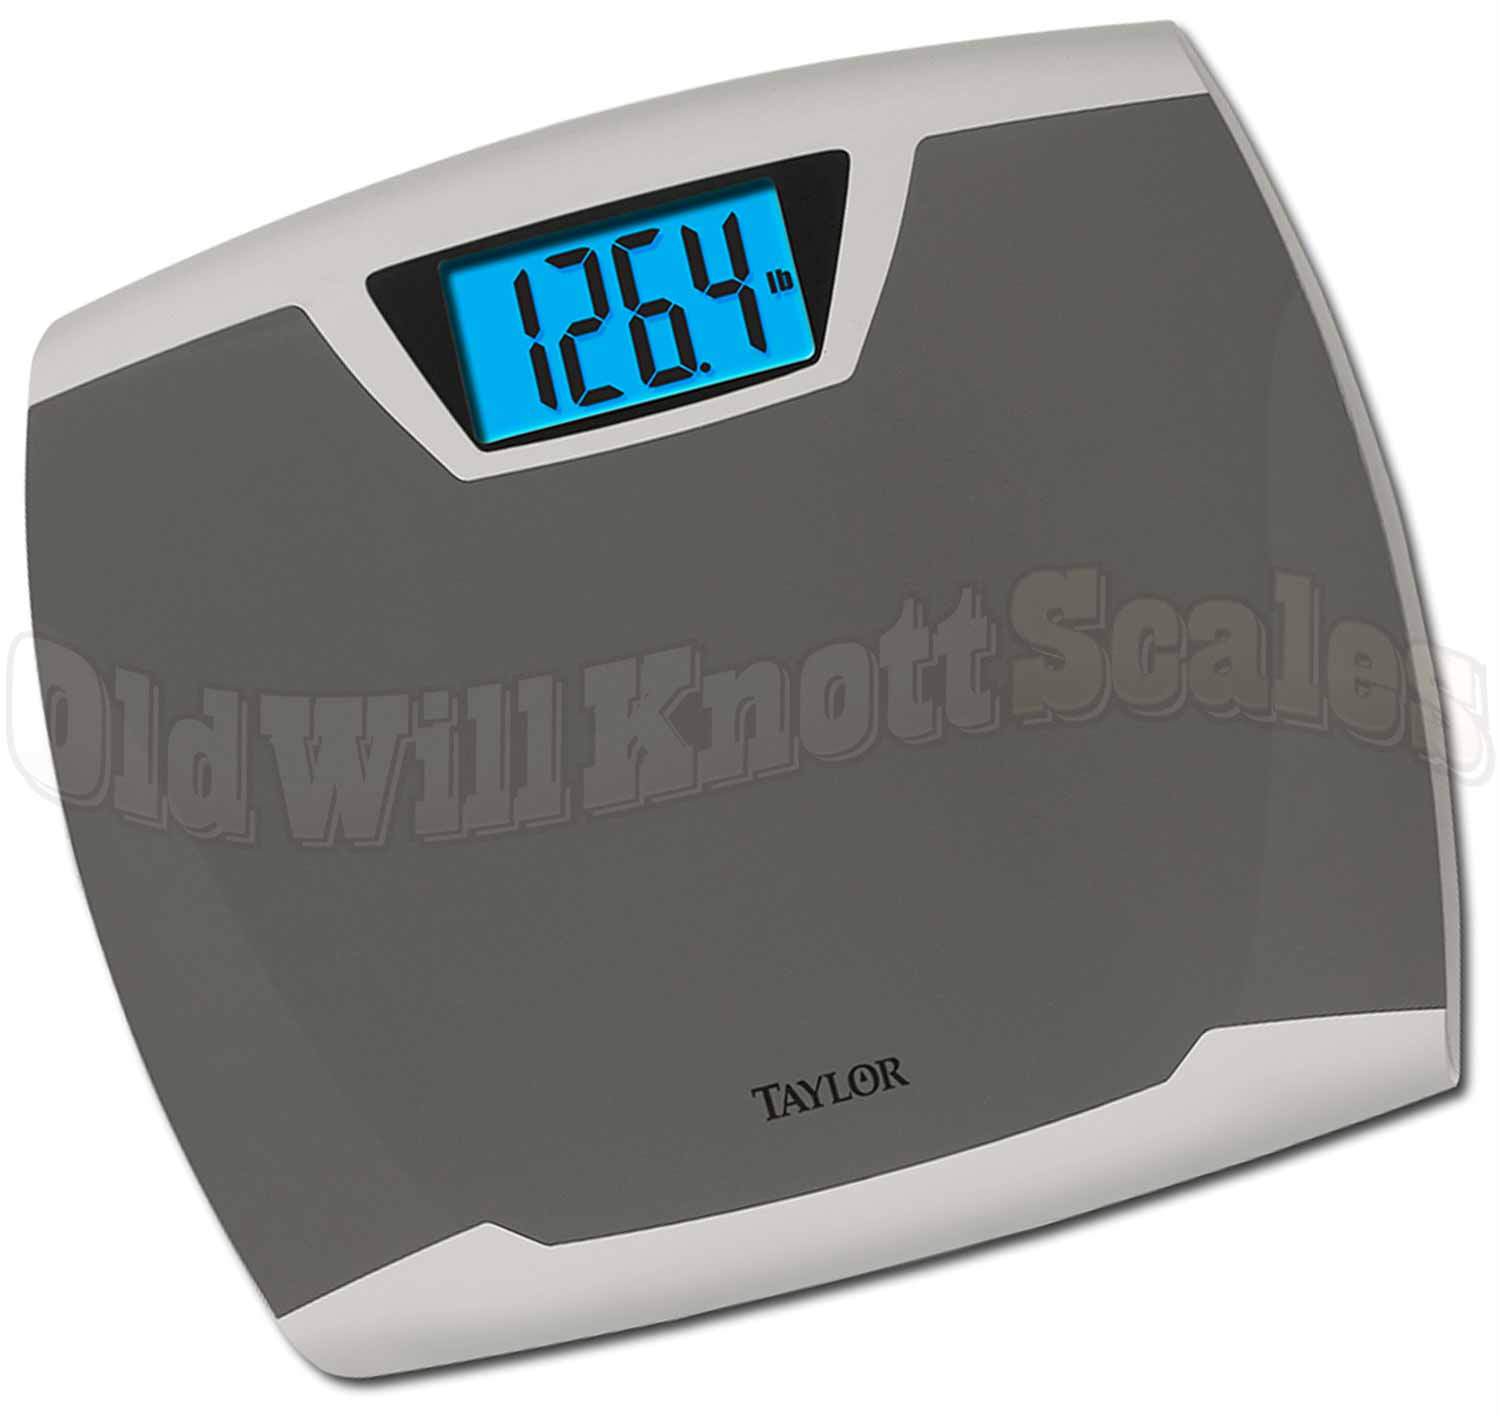 Taylor 7370 High Capacity Antimicrobial Bathroom Scale With Large Lcd